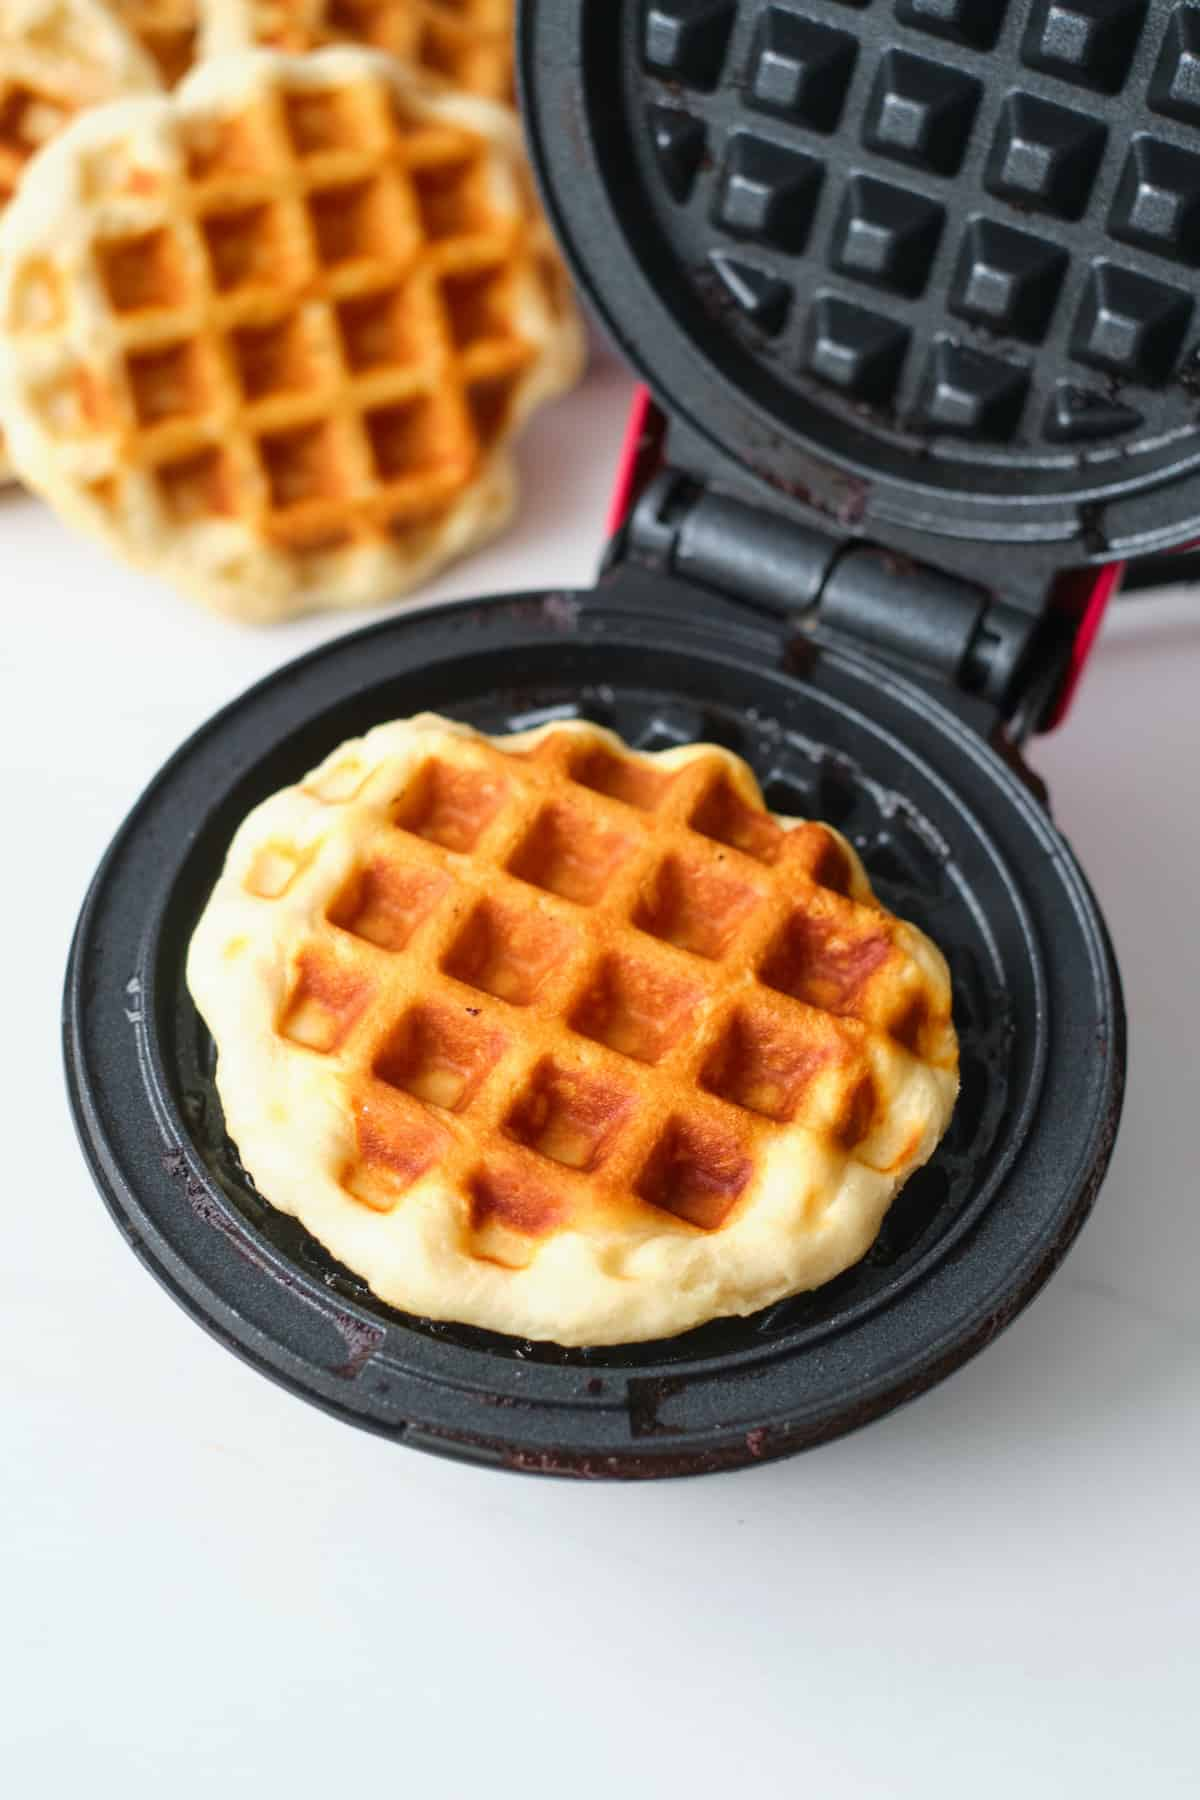 one of the cooked biscuit waffles inside the waffle maker